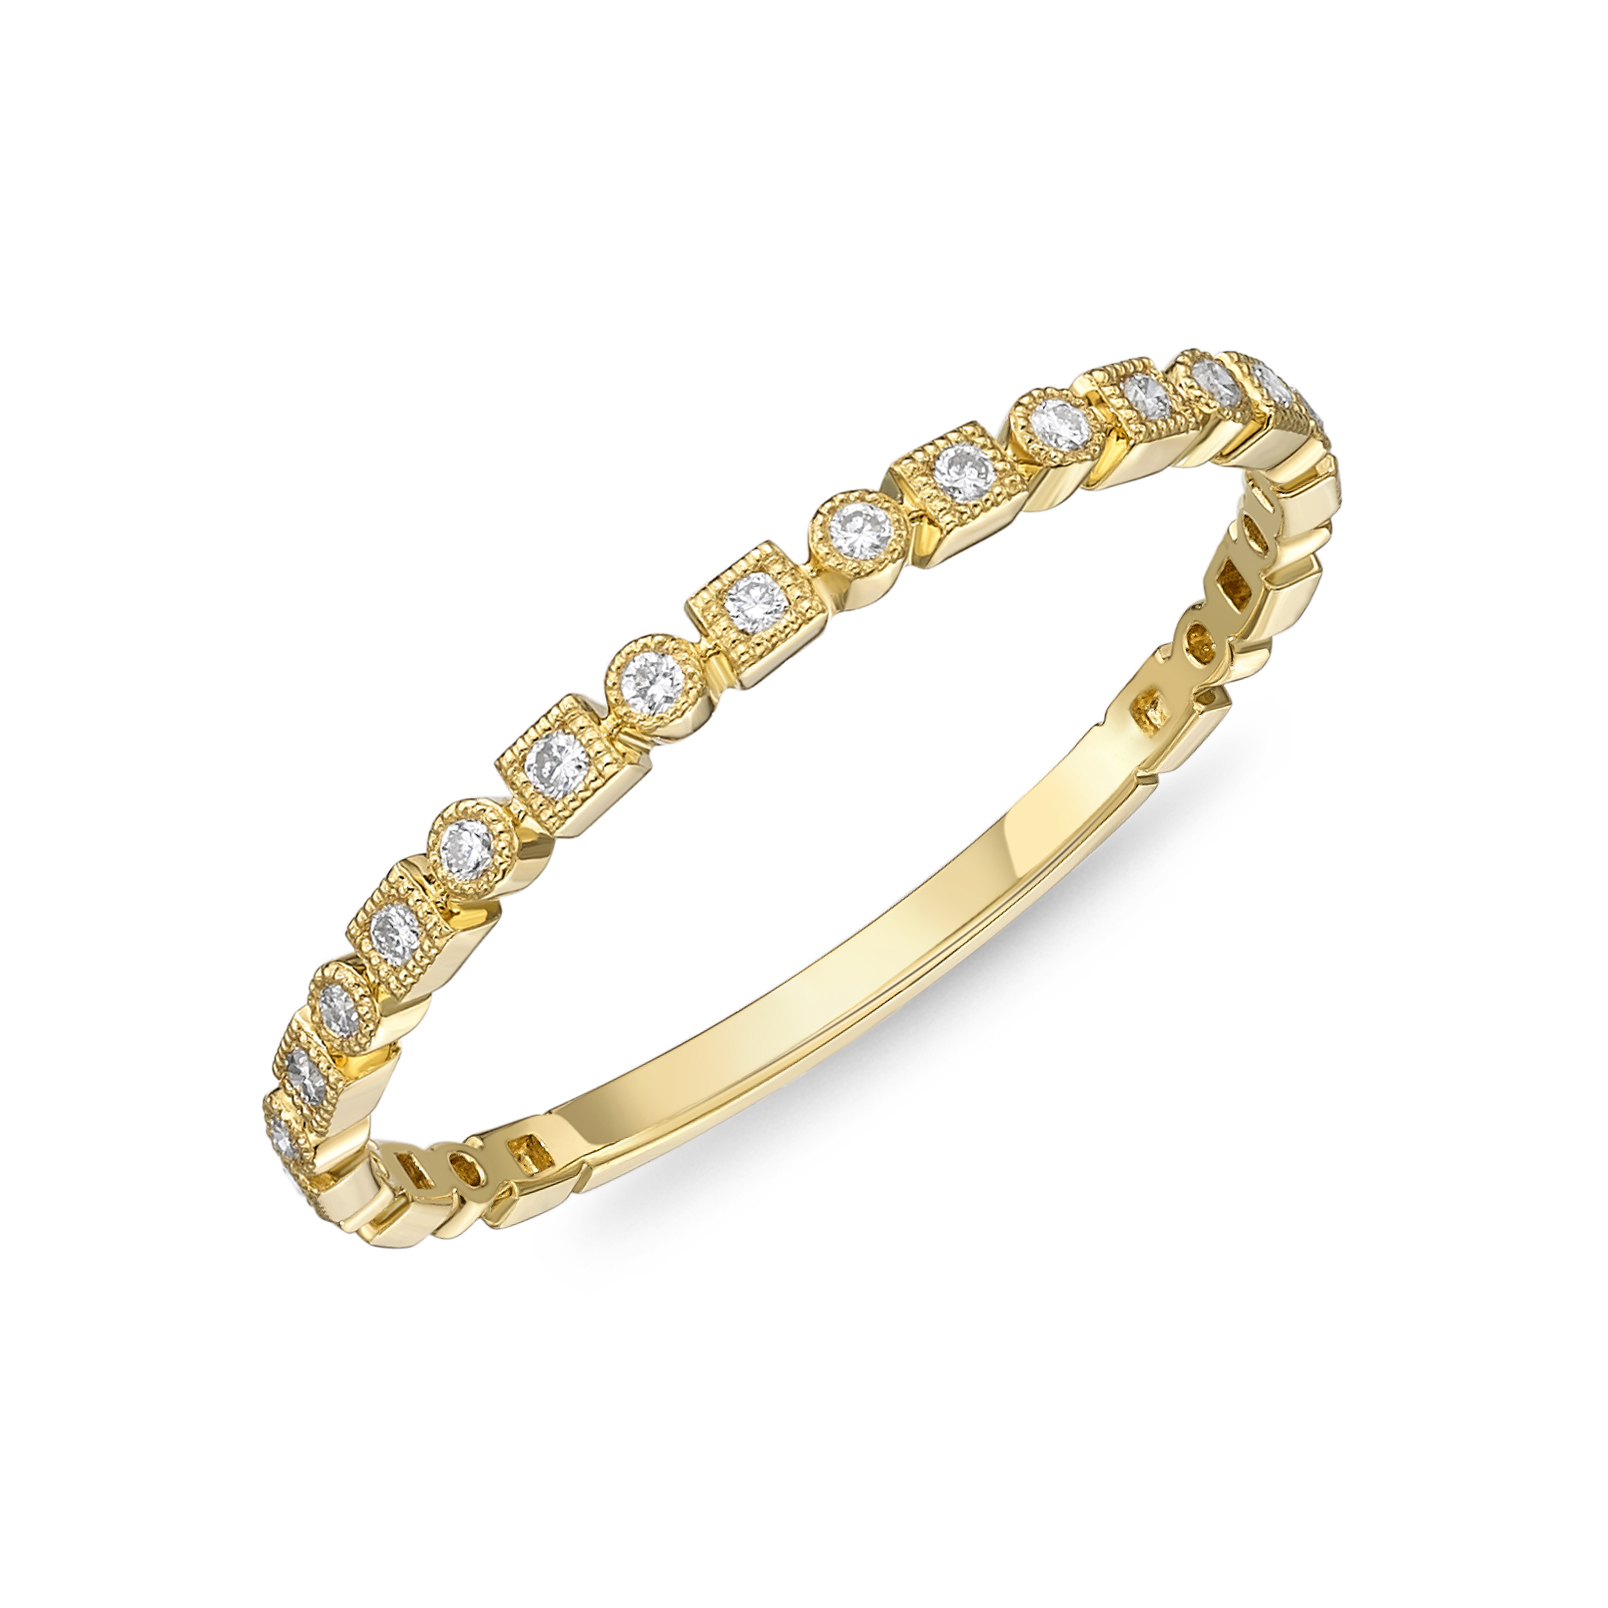 Memoire 18ct Yellow Gold Vintage Square and Round Stack Ring with 17 Diamonds